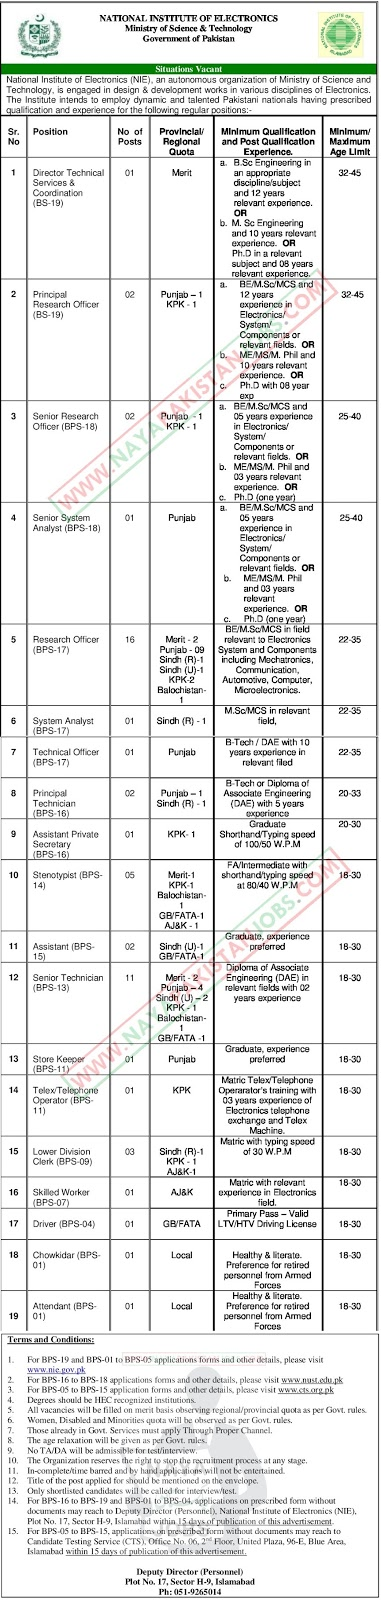 nie jobs, National Institute of Electronics Jobs 2019 March | Govt of Pakistan